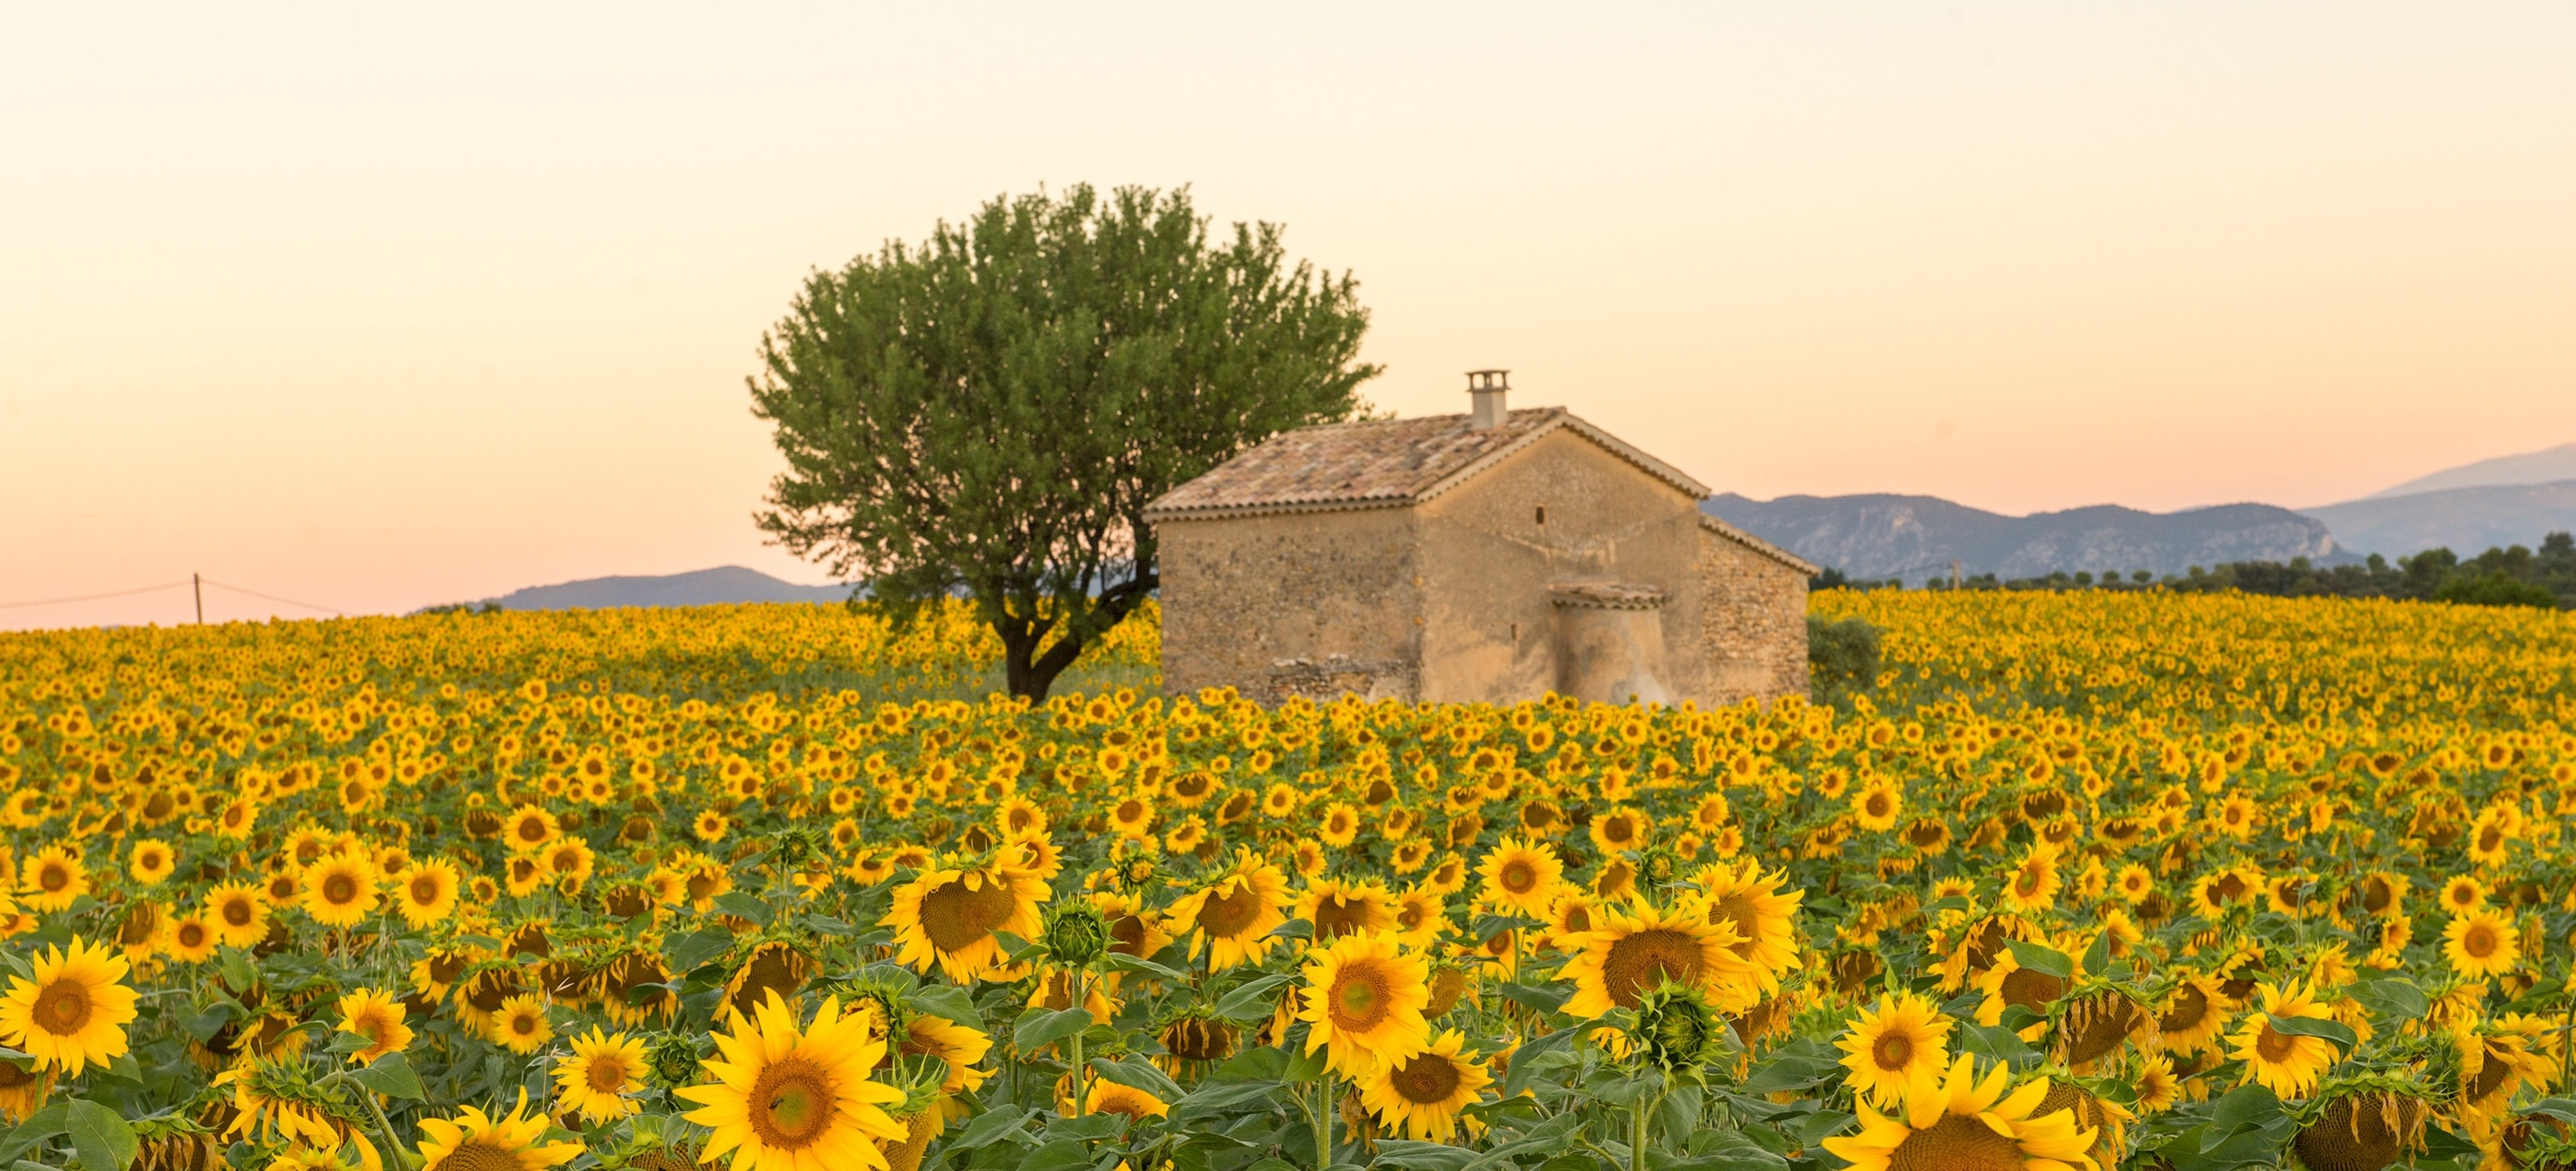 Enchanting Travel France Tours A field of sunflowers surrounds an old building in Provence, France - Best time to visit France